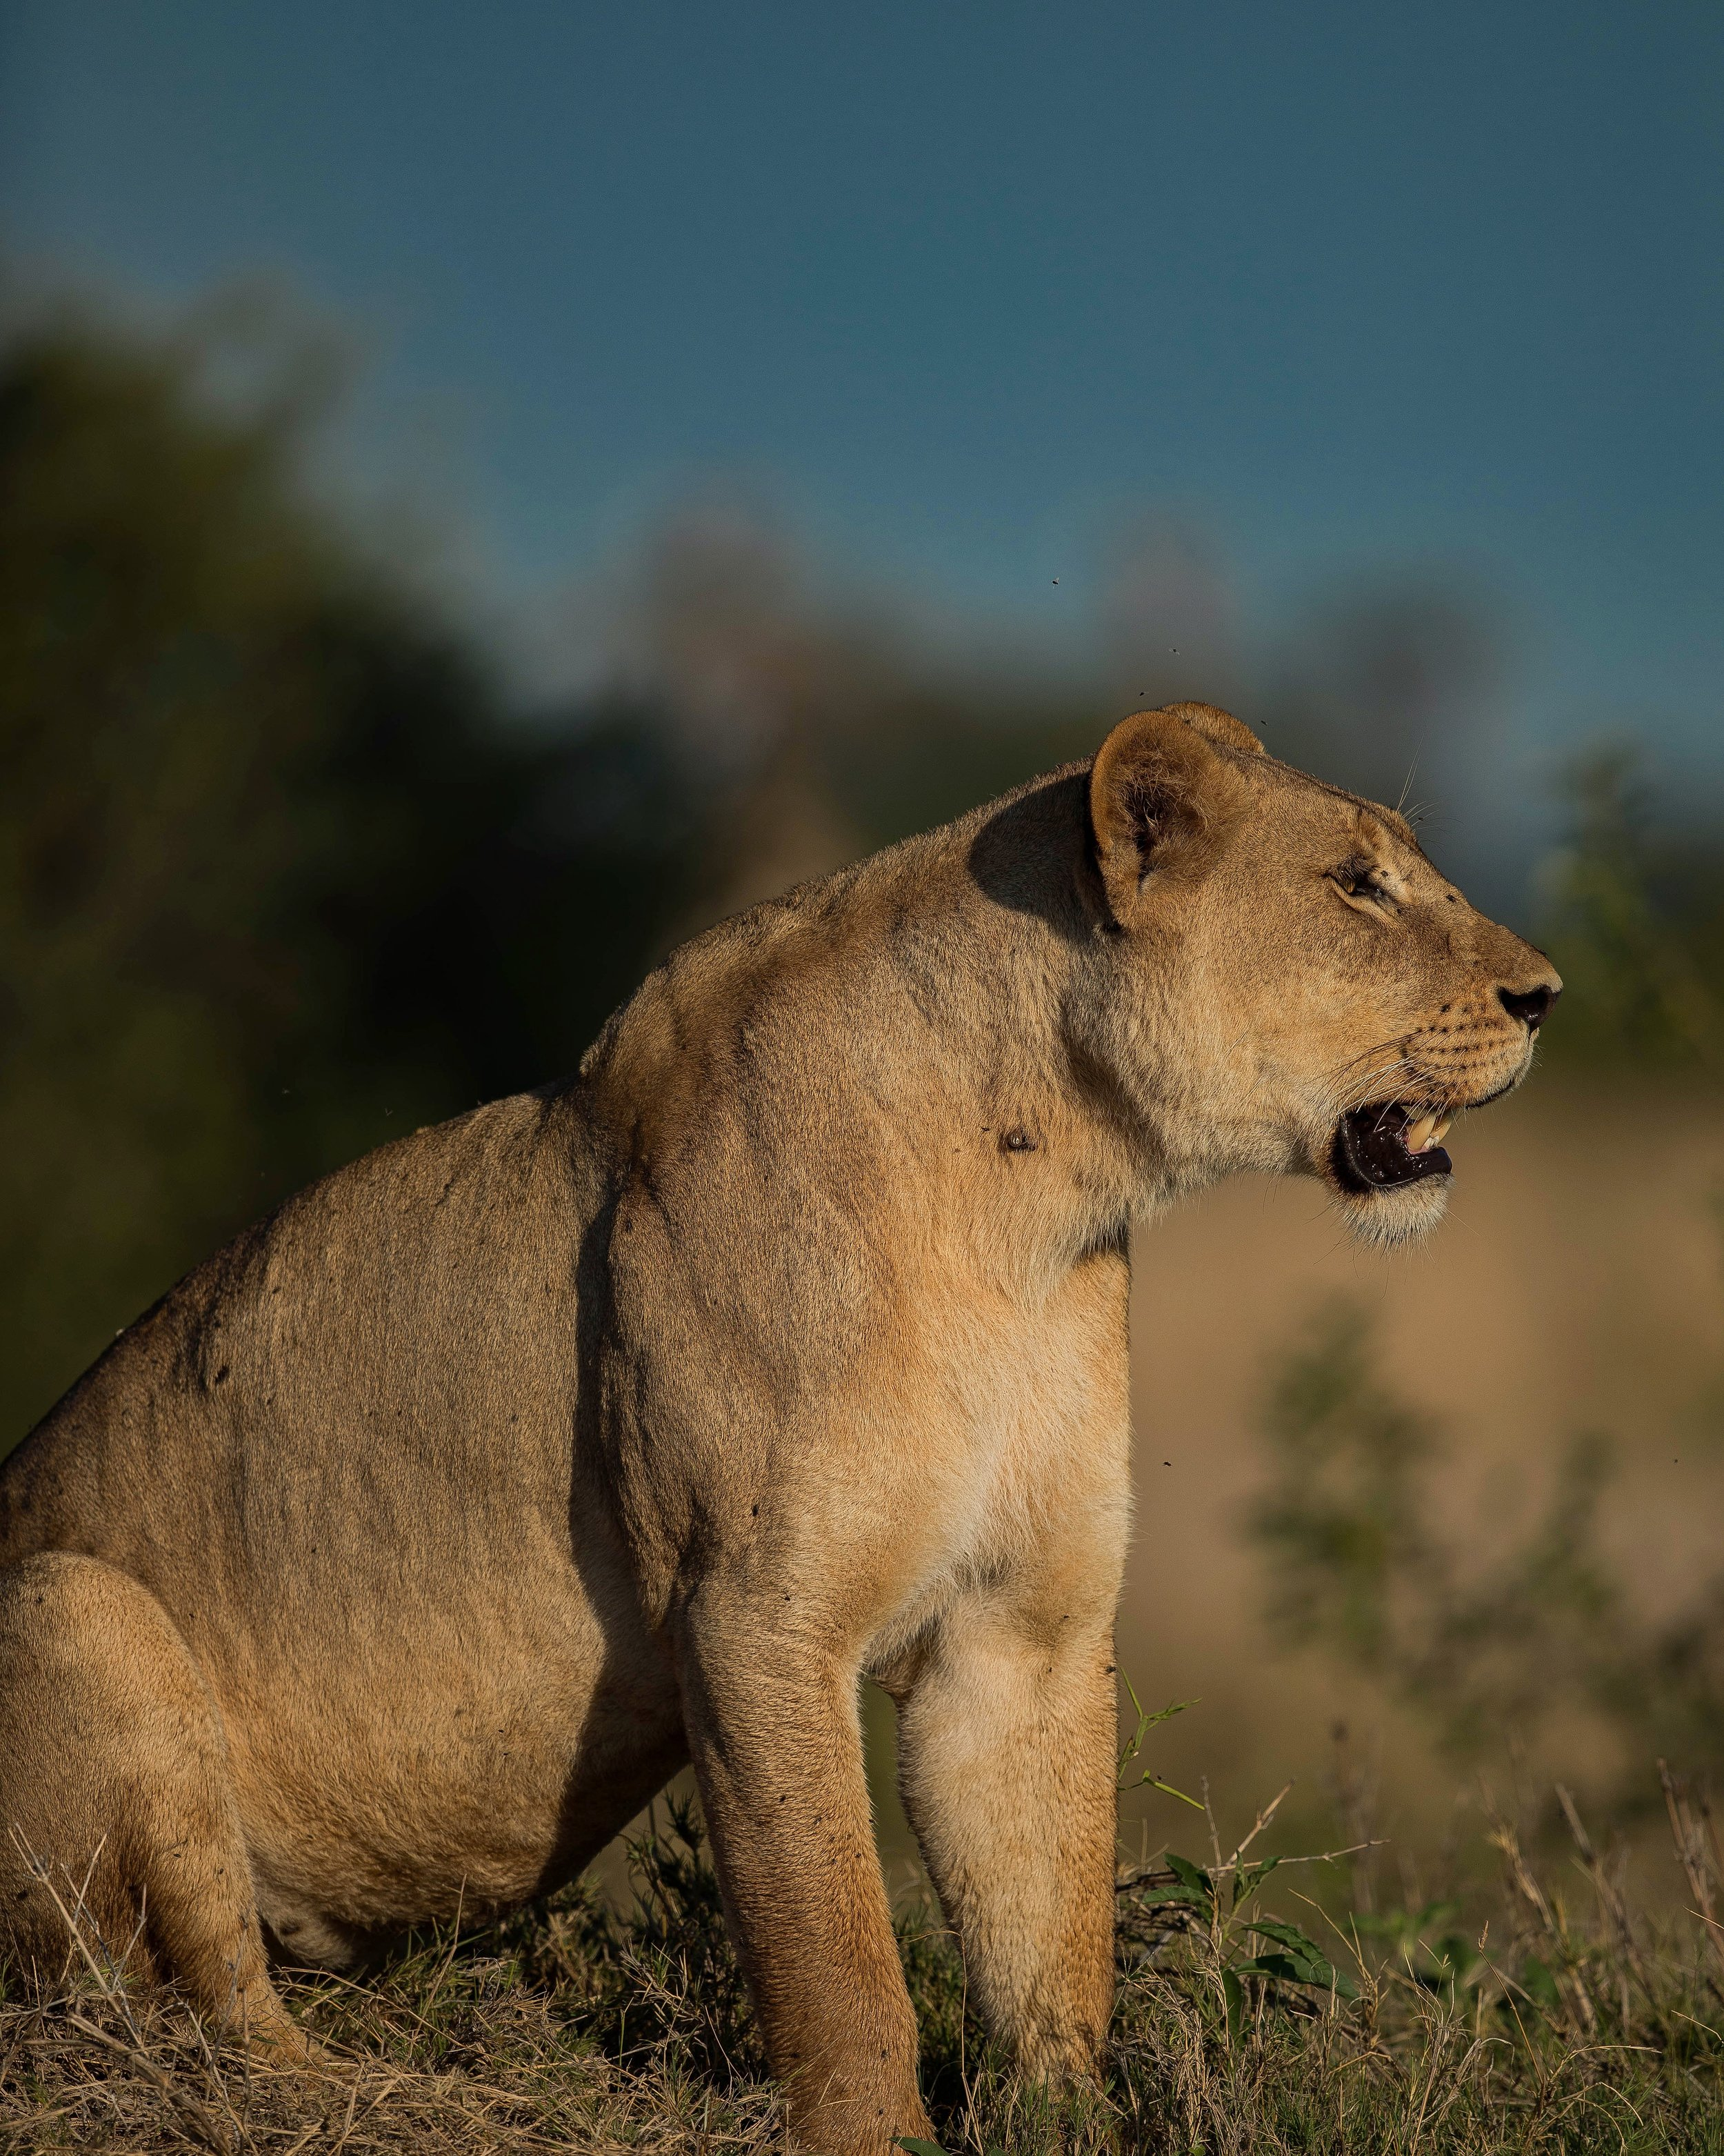 A pregnant Lioness does not get a day off from hunting